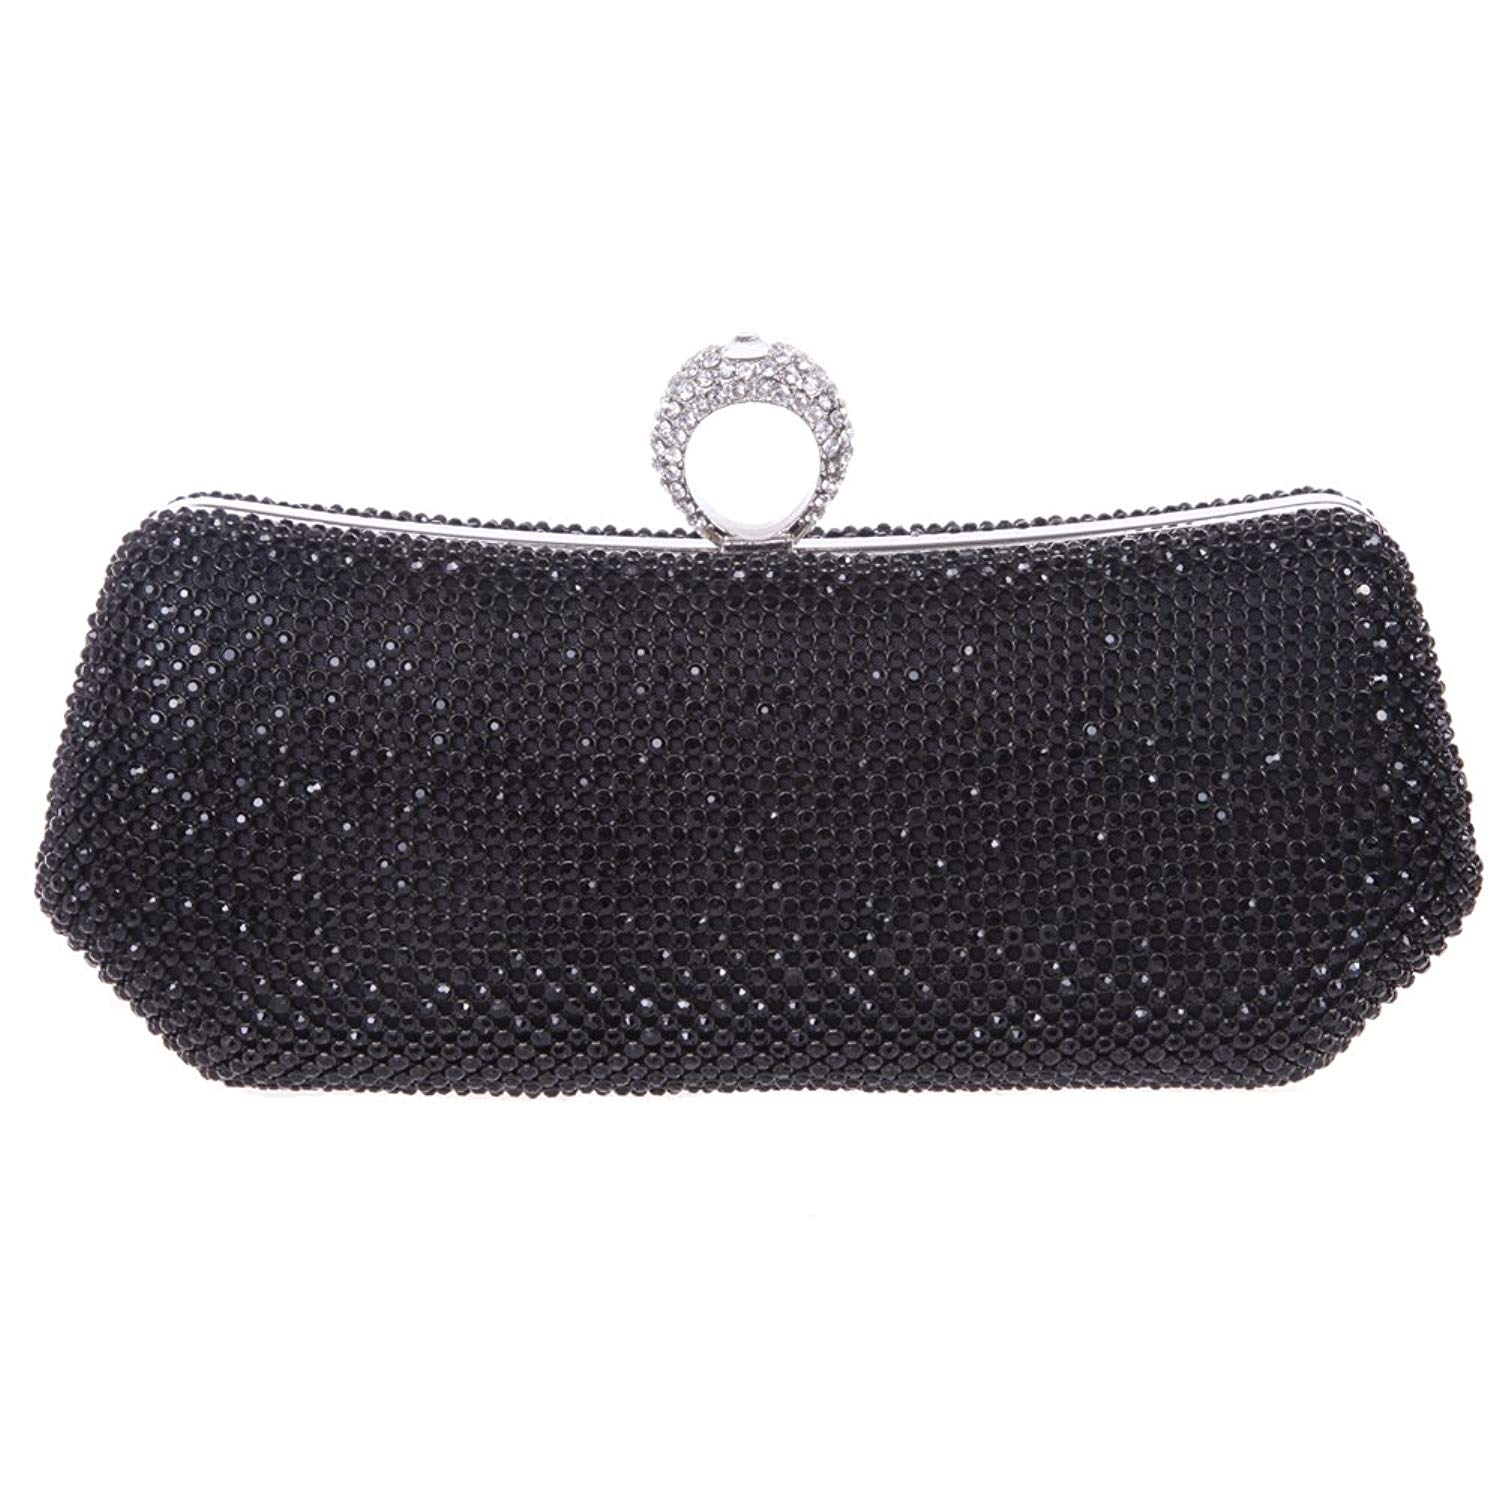 b3ab4883d4 Fawziya Bling Ring Clutch Purse Women Rhinestone Clutch Evening Bag